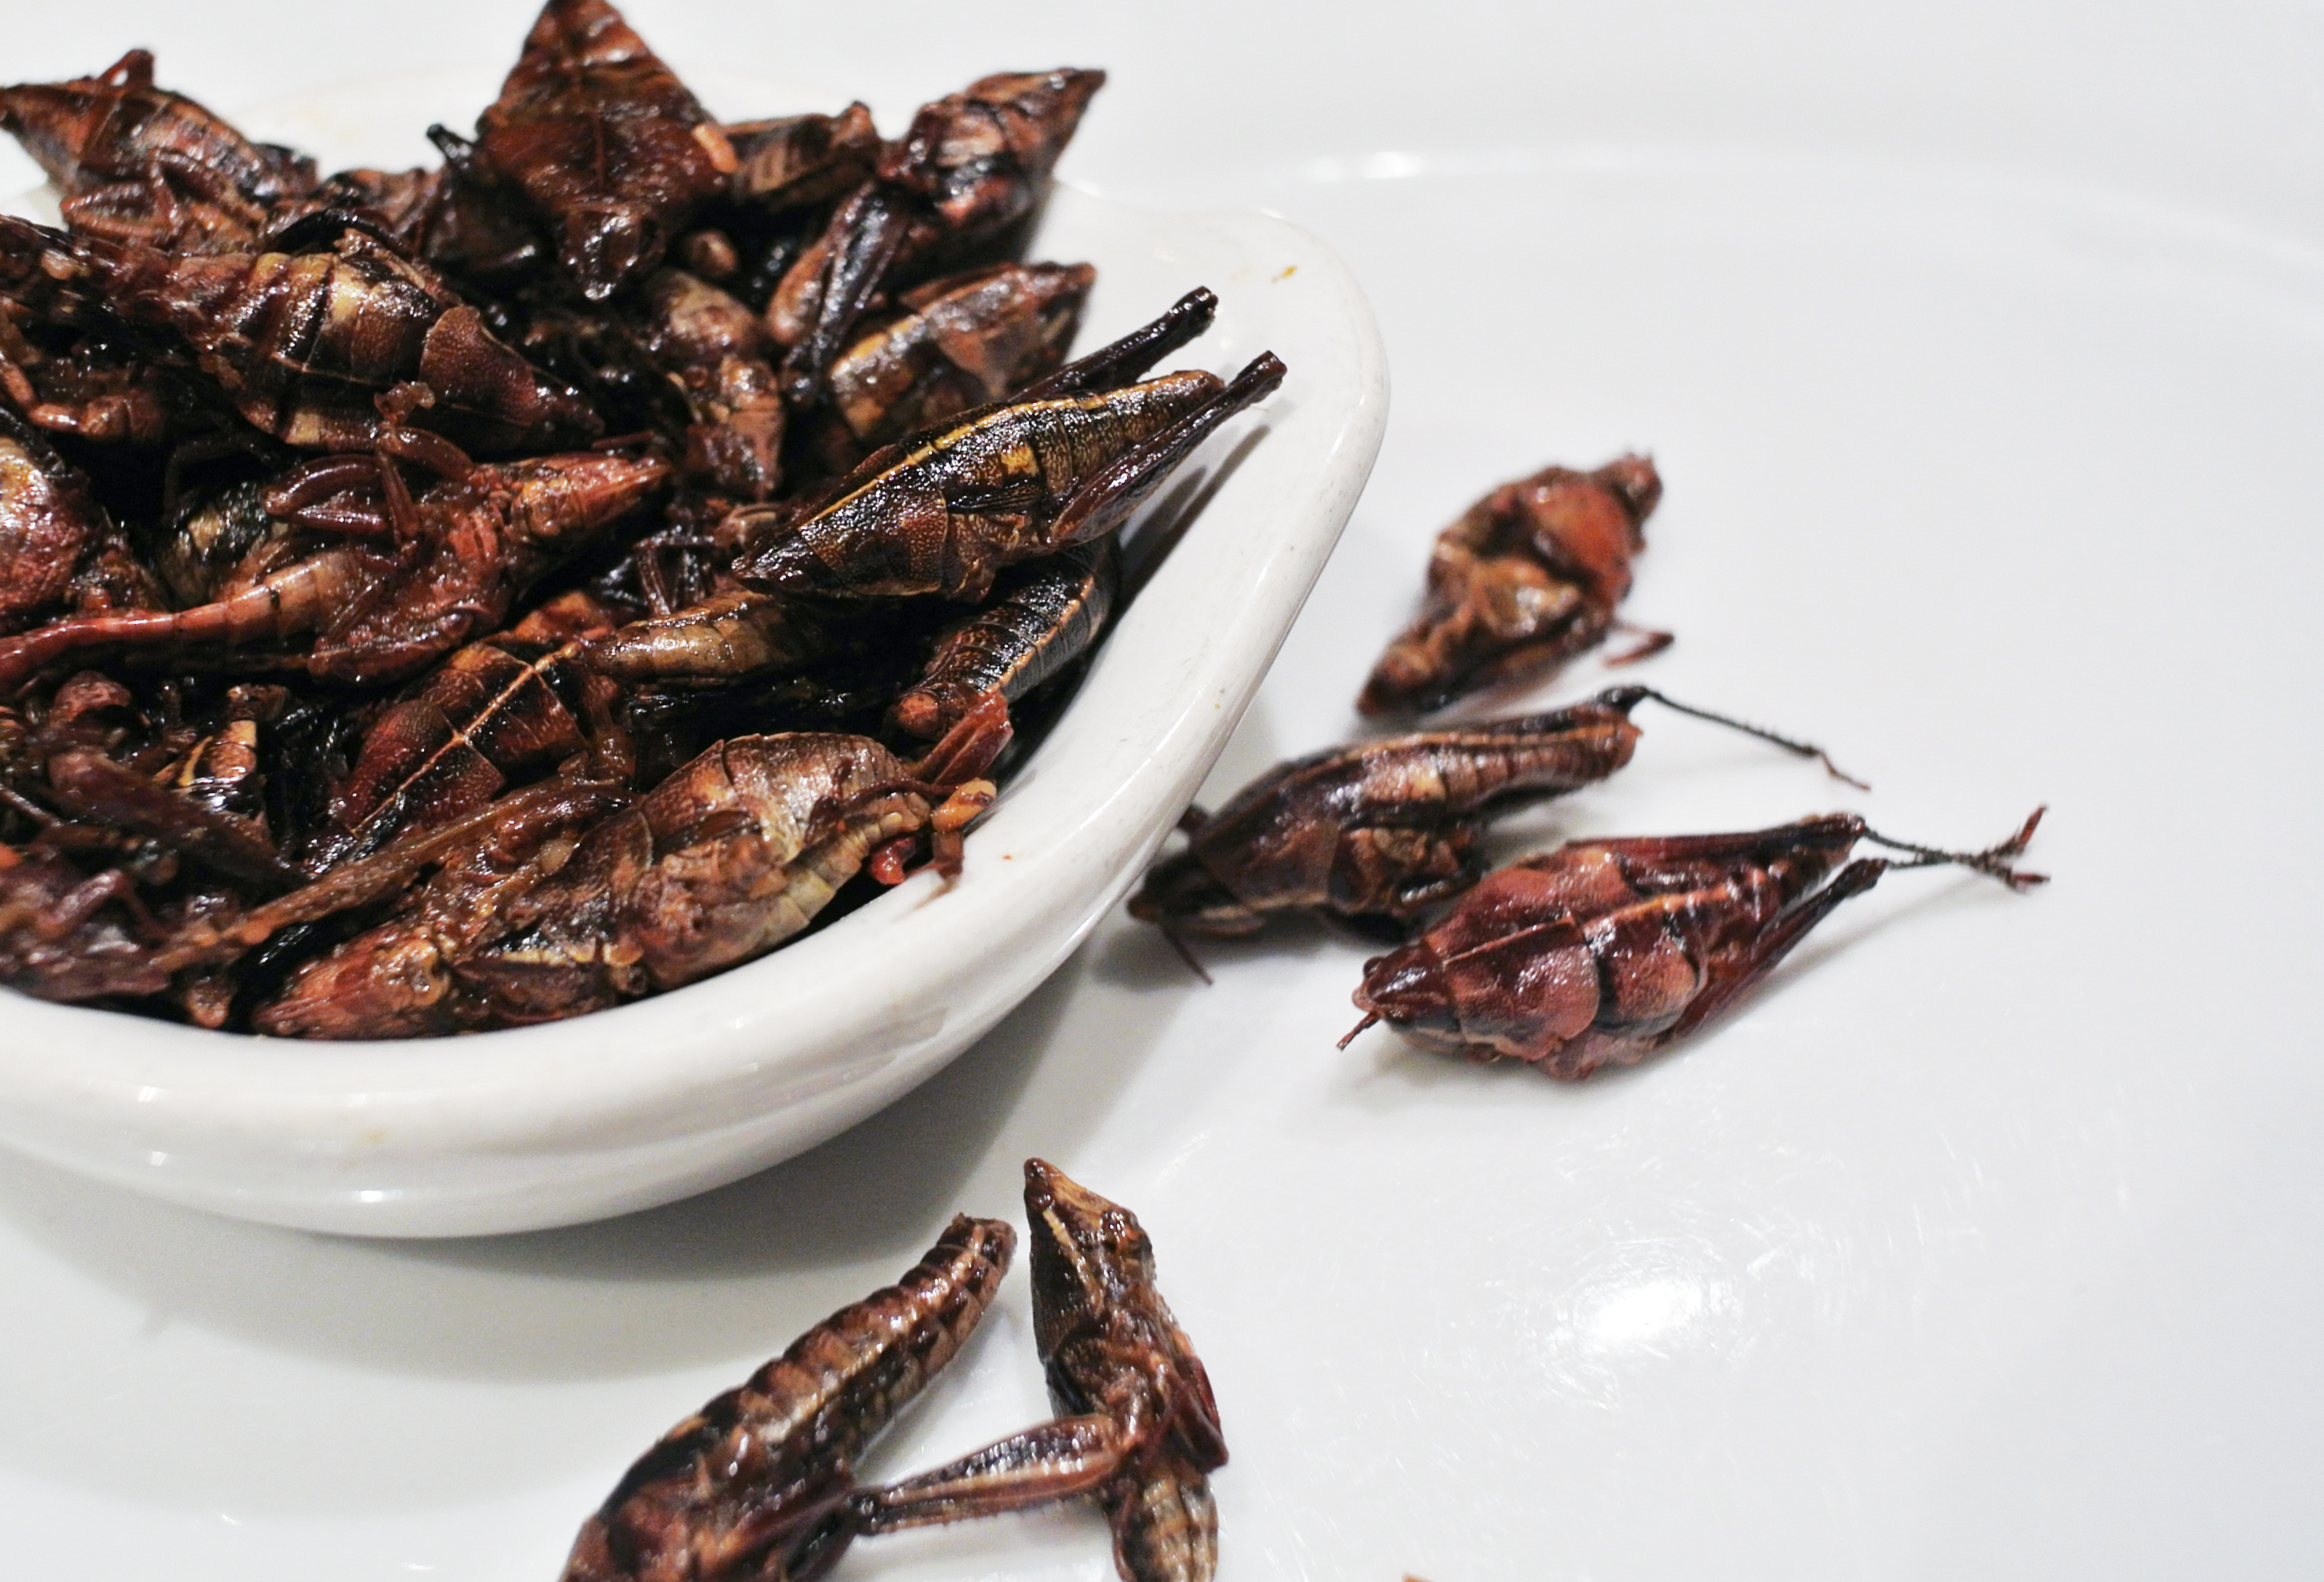 A bowl of grasshoppers